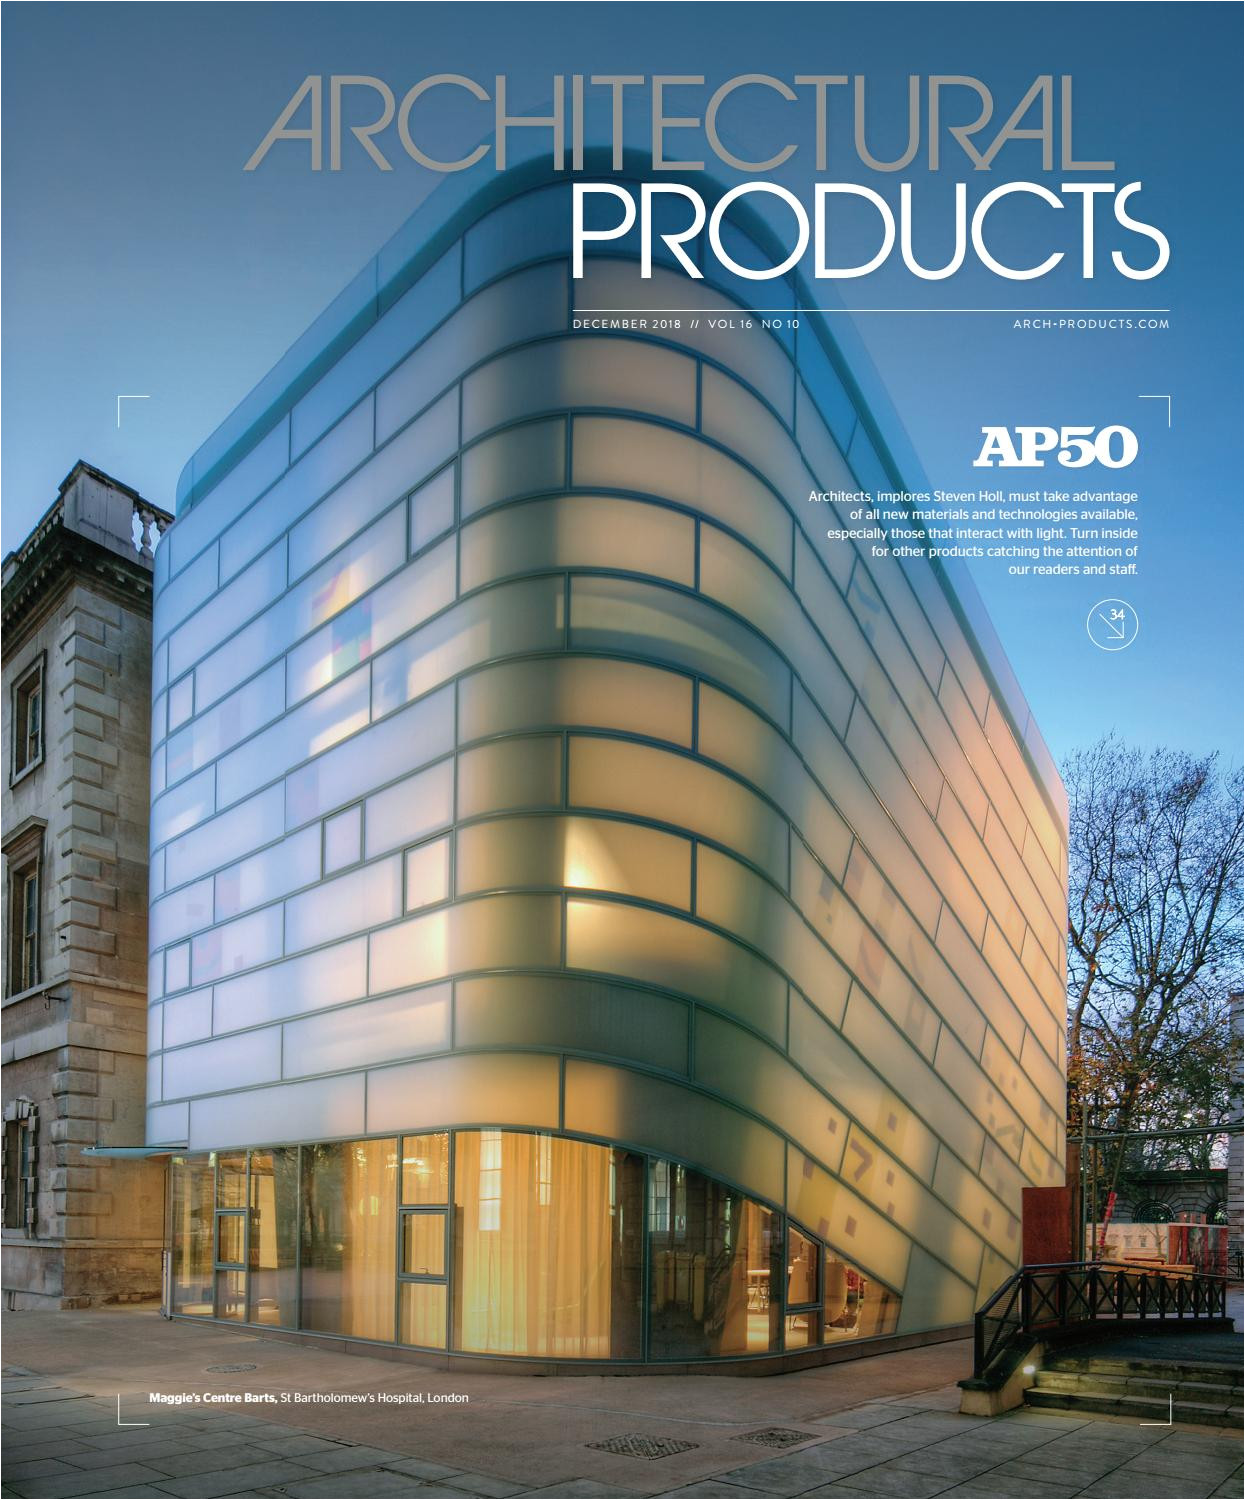 architectural products december 2018 by construction business media issuu